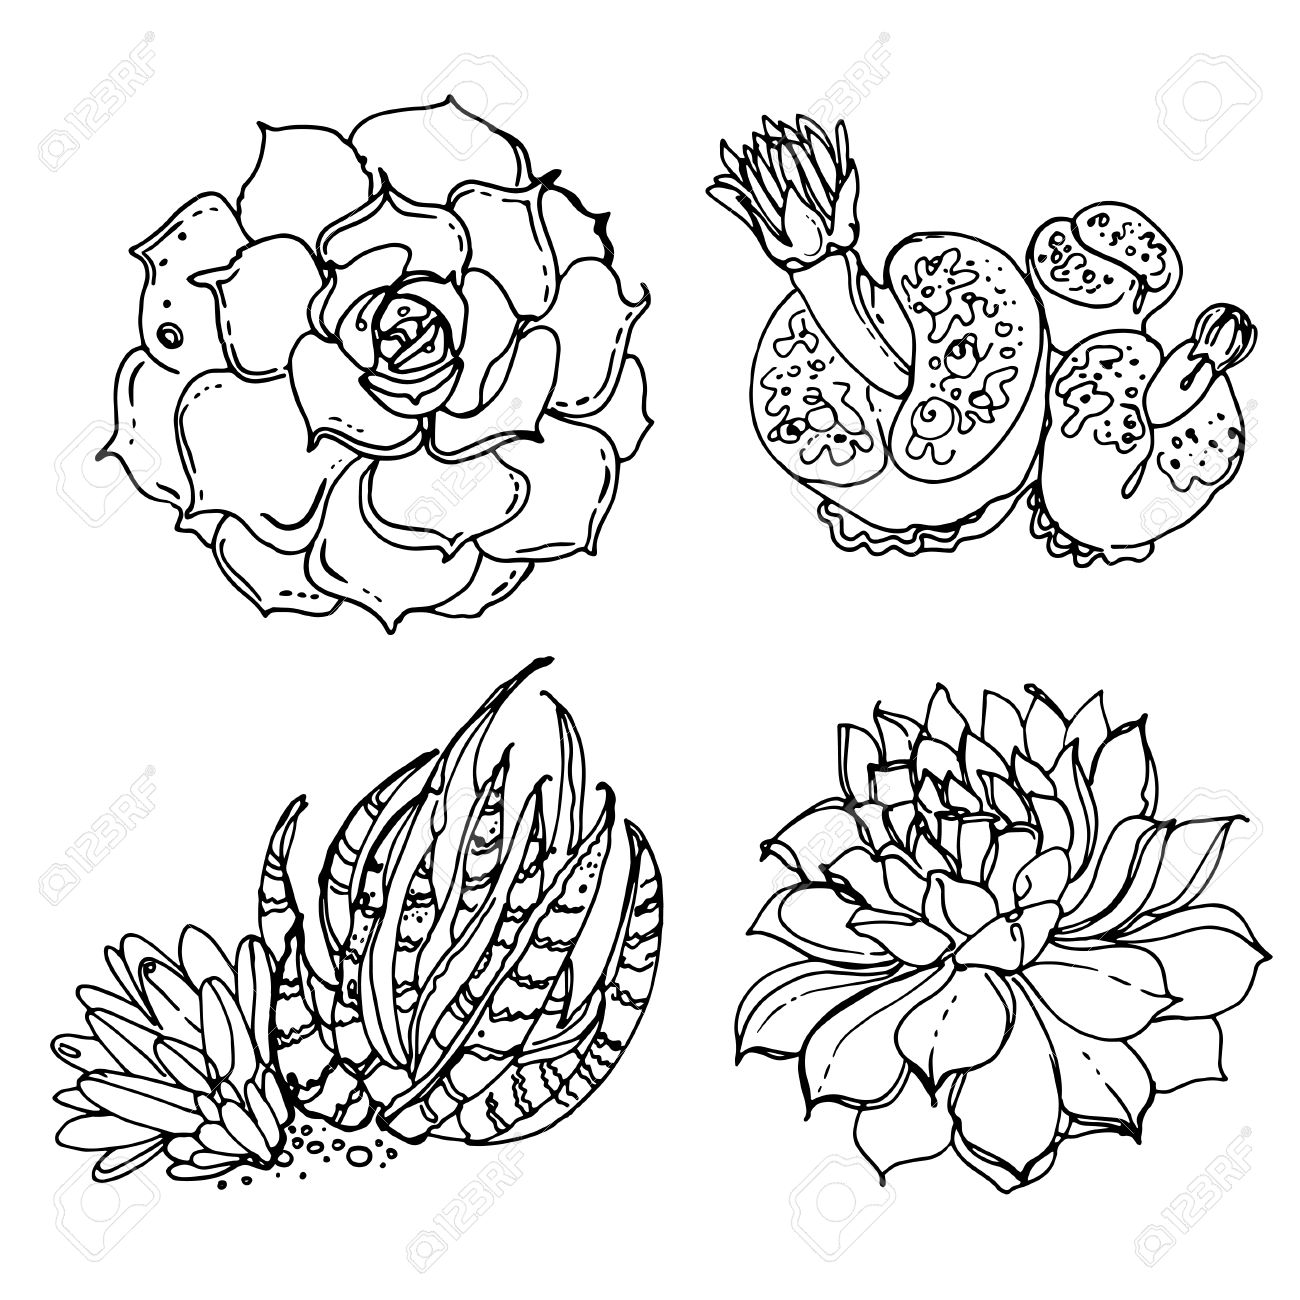 Cacti And Succulents Painted A White Line On A White Background Royalty Free Cliparts Vectors And Stock Illustration Image 66667991